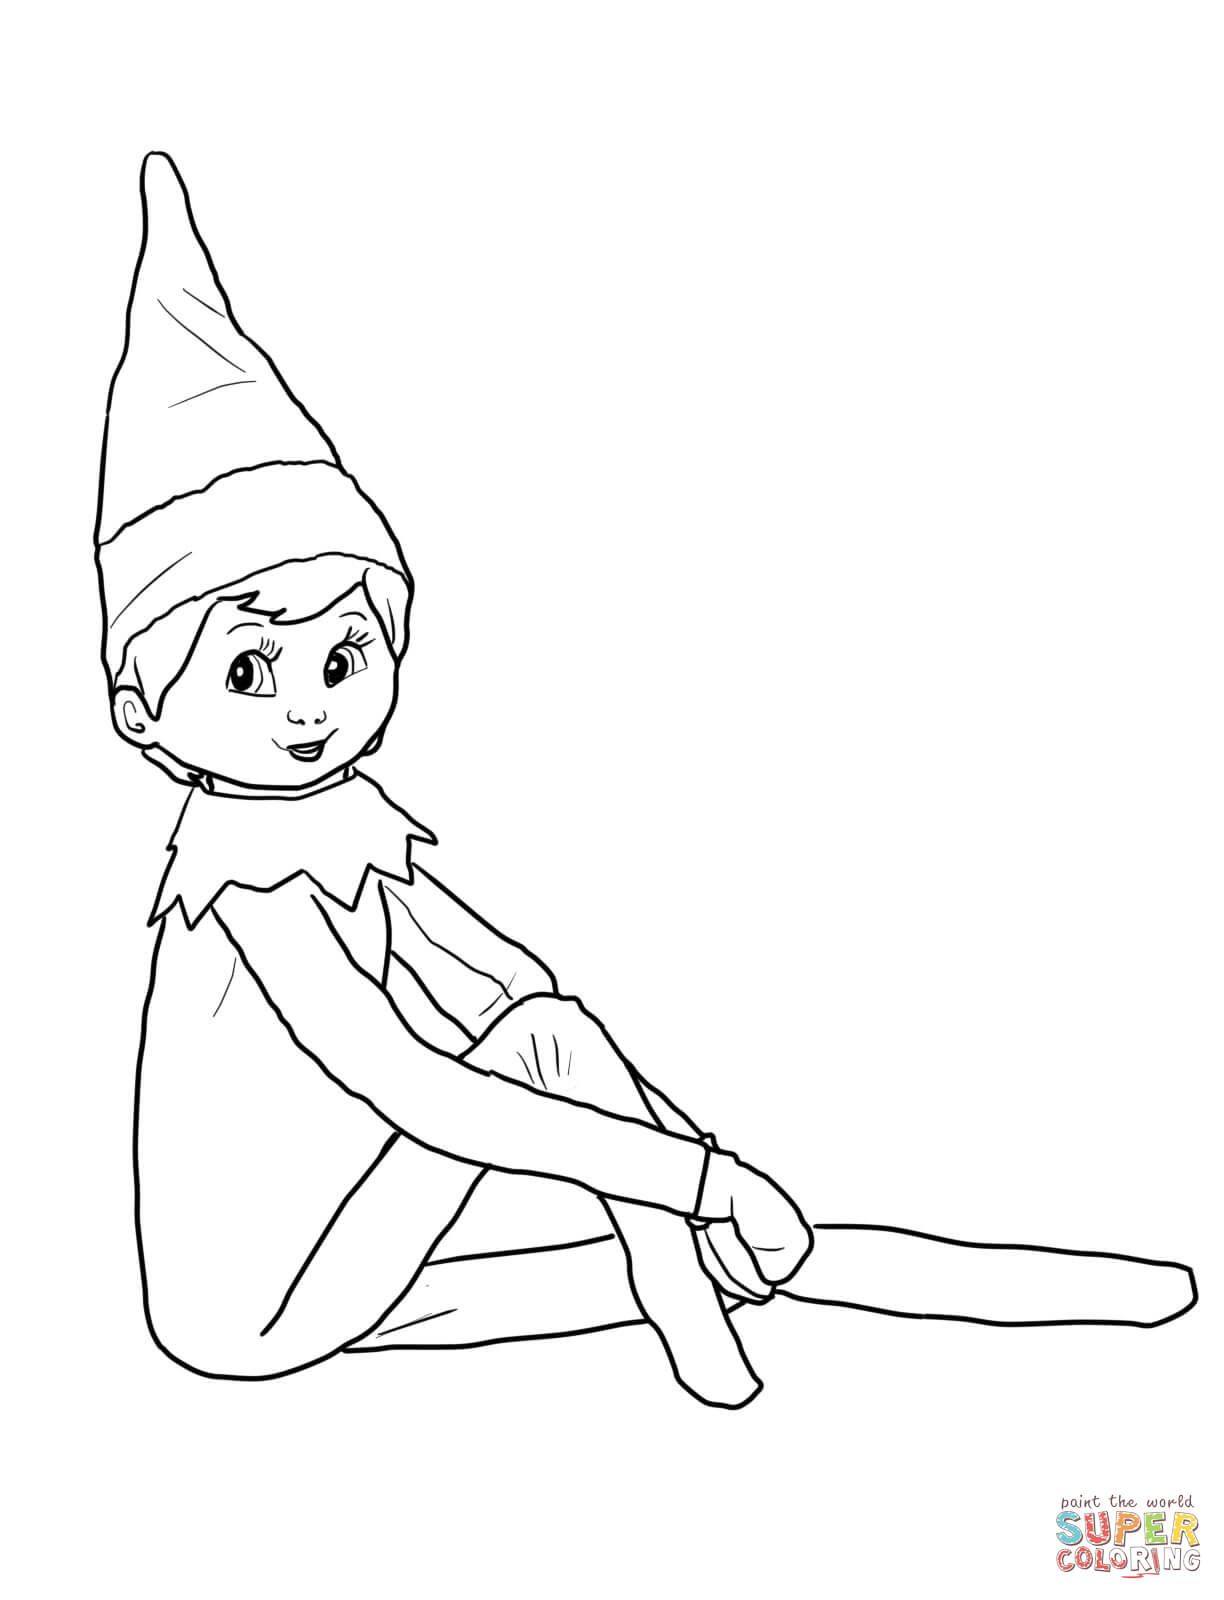 1224x1600 Httpcolorings.coelf On The Shelf Coloring Pages For Girls